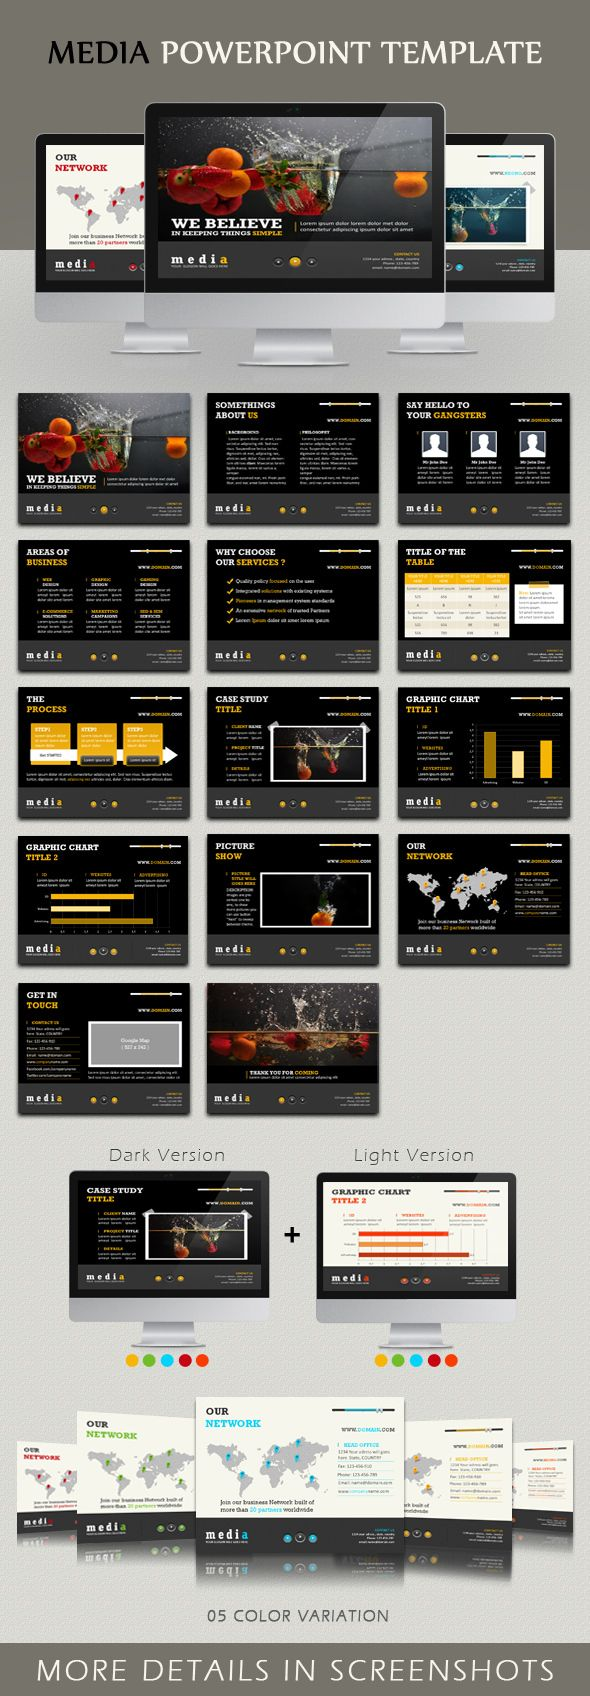 Media Powerpoint template by kh2838 Studio, via Behance